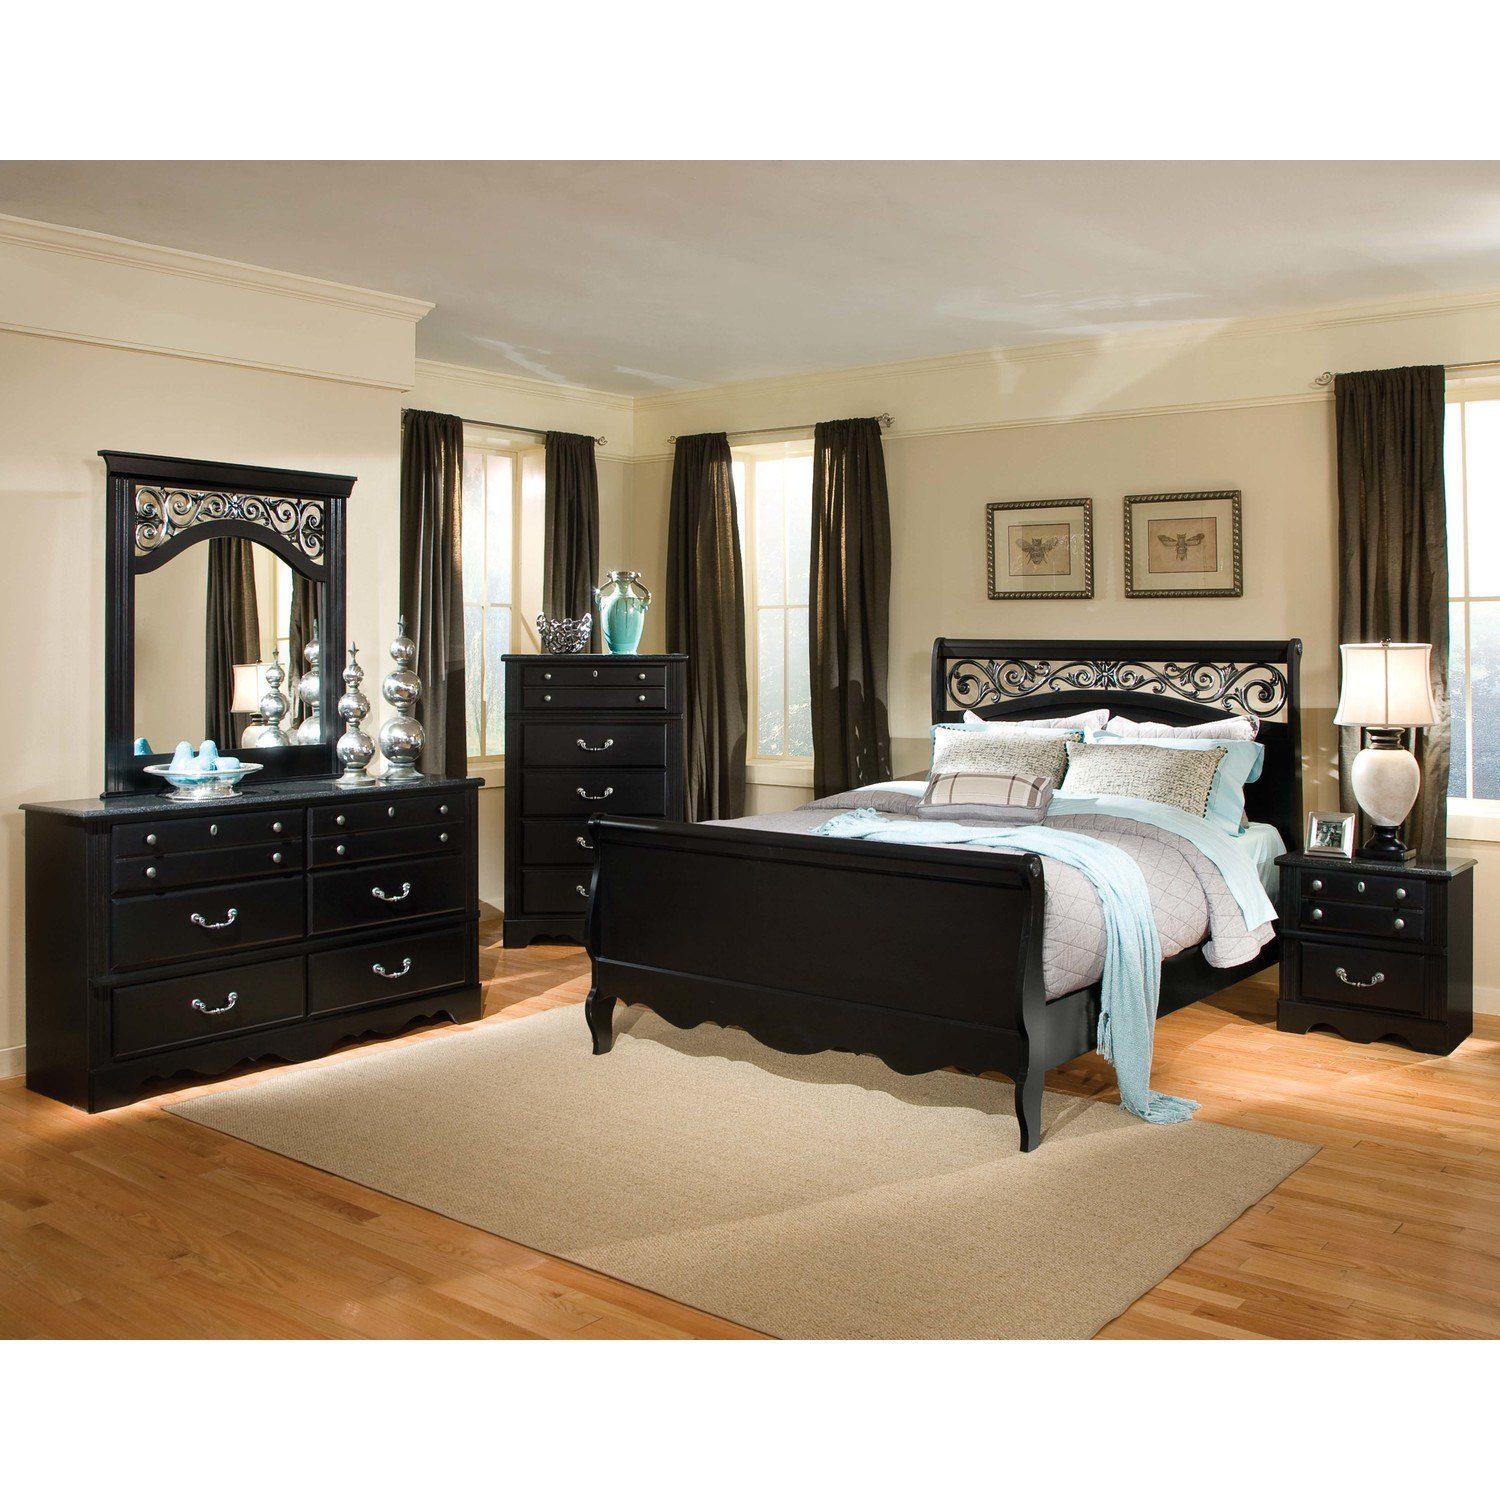 Best Black Gloss Bedroom Furniture Northern Ireland Home With Pictures